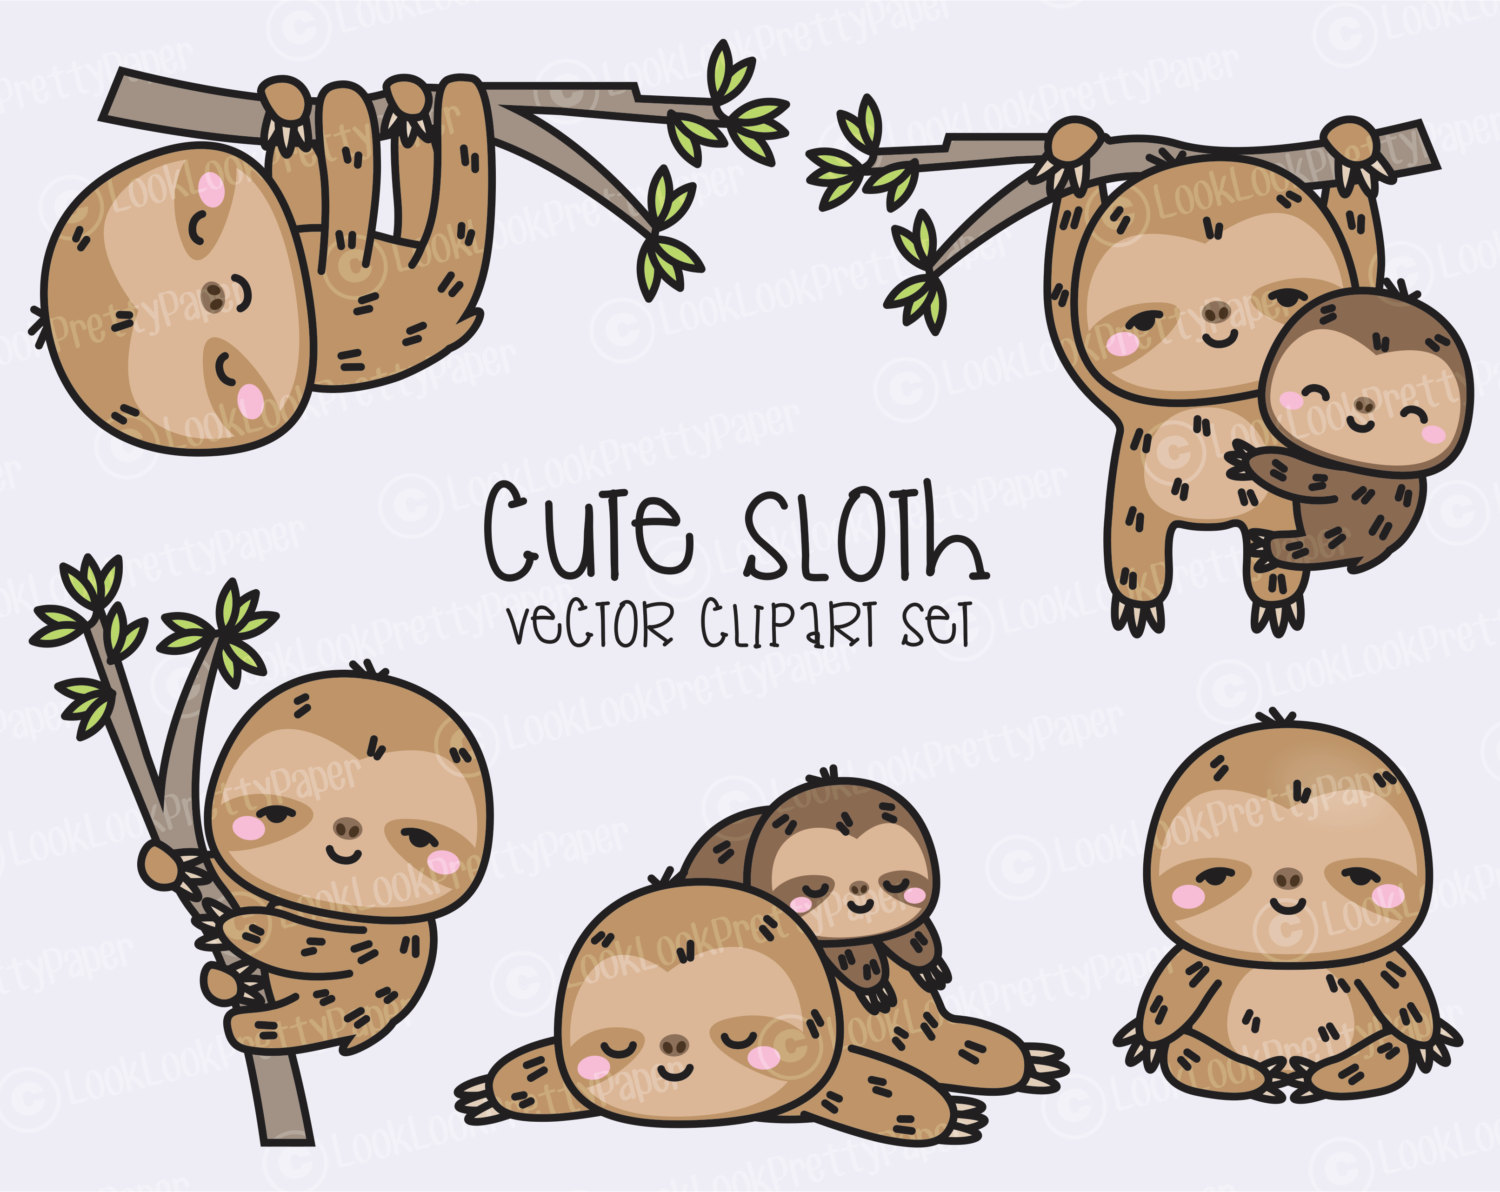 Cute sloth art.